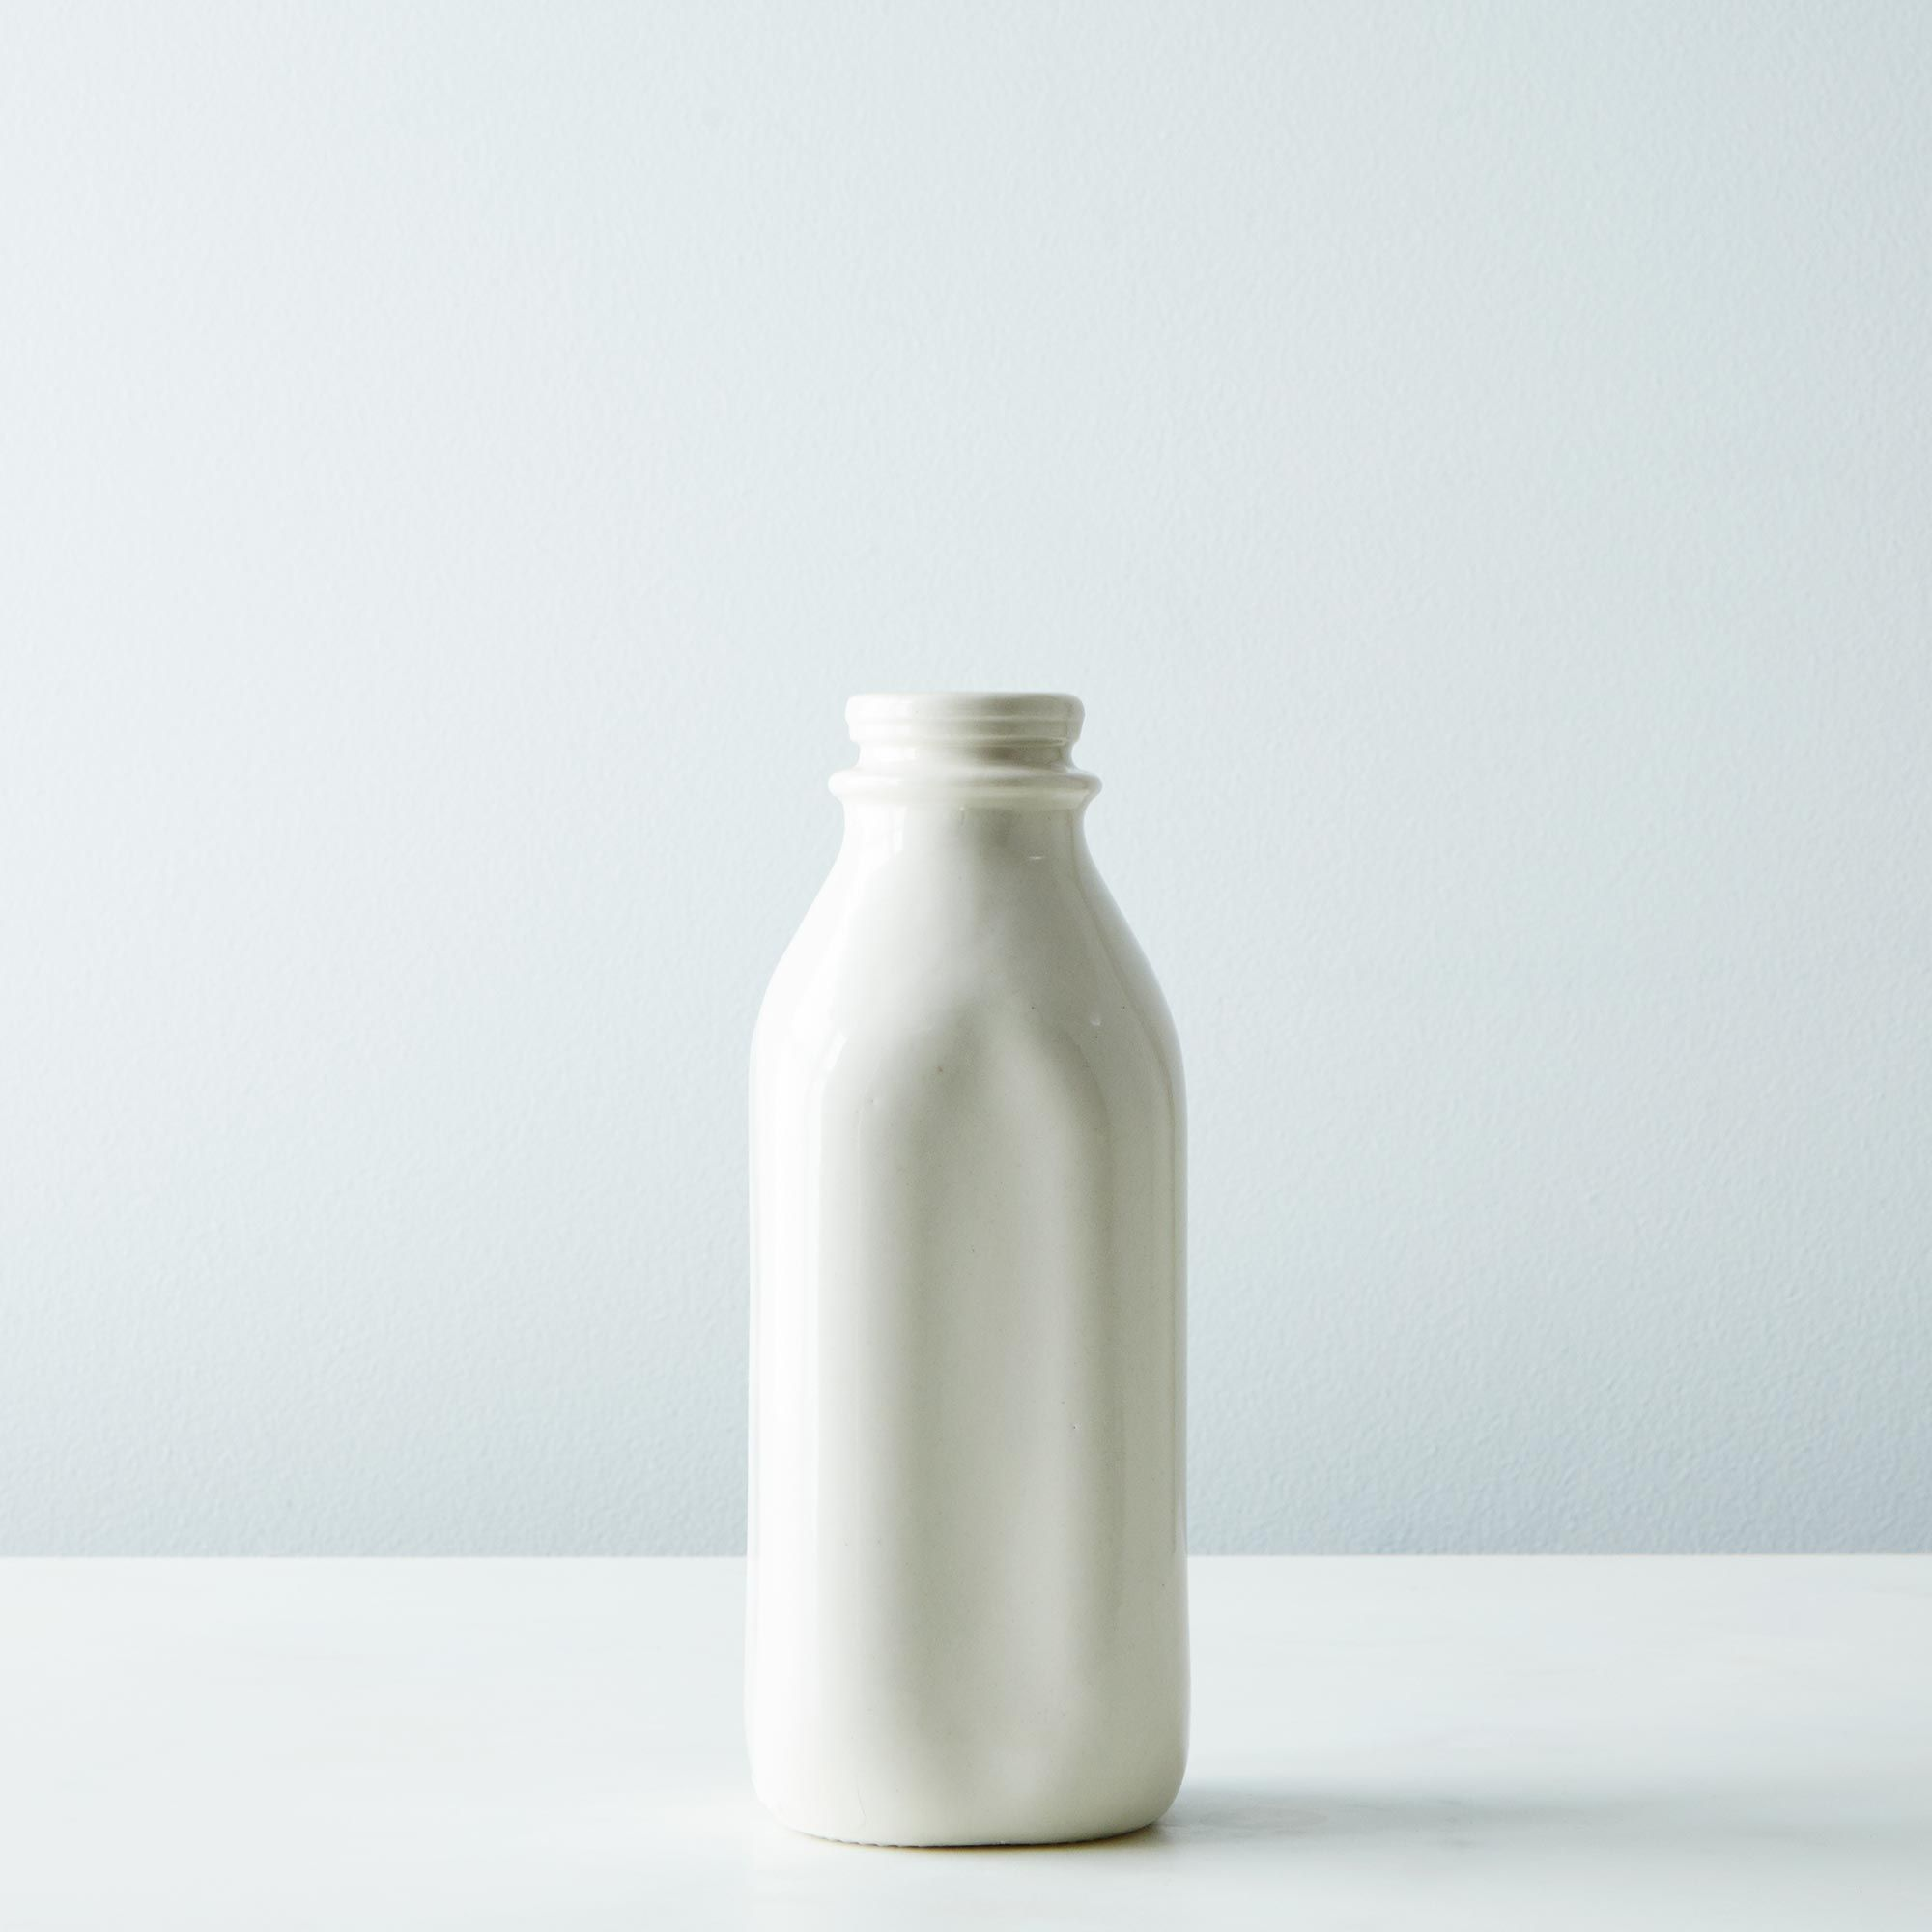 E450d3e1 8194 47b9 80d4 ee2829f50011  2014 0331 adorabella ceramics porcelain milk bottle 006